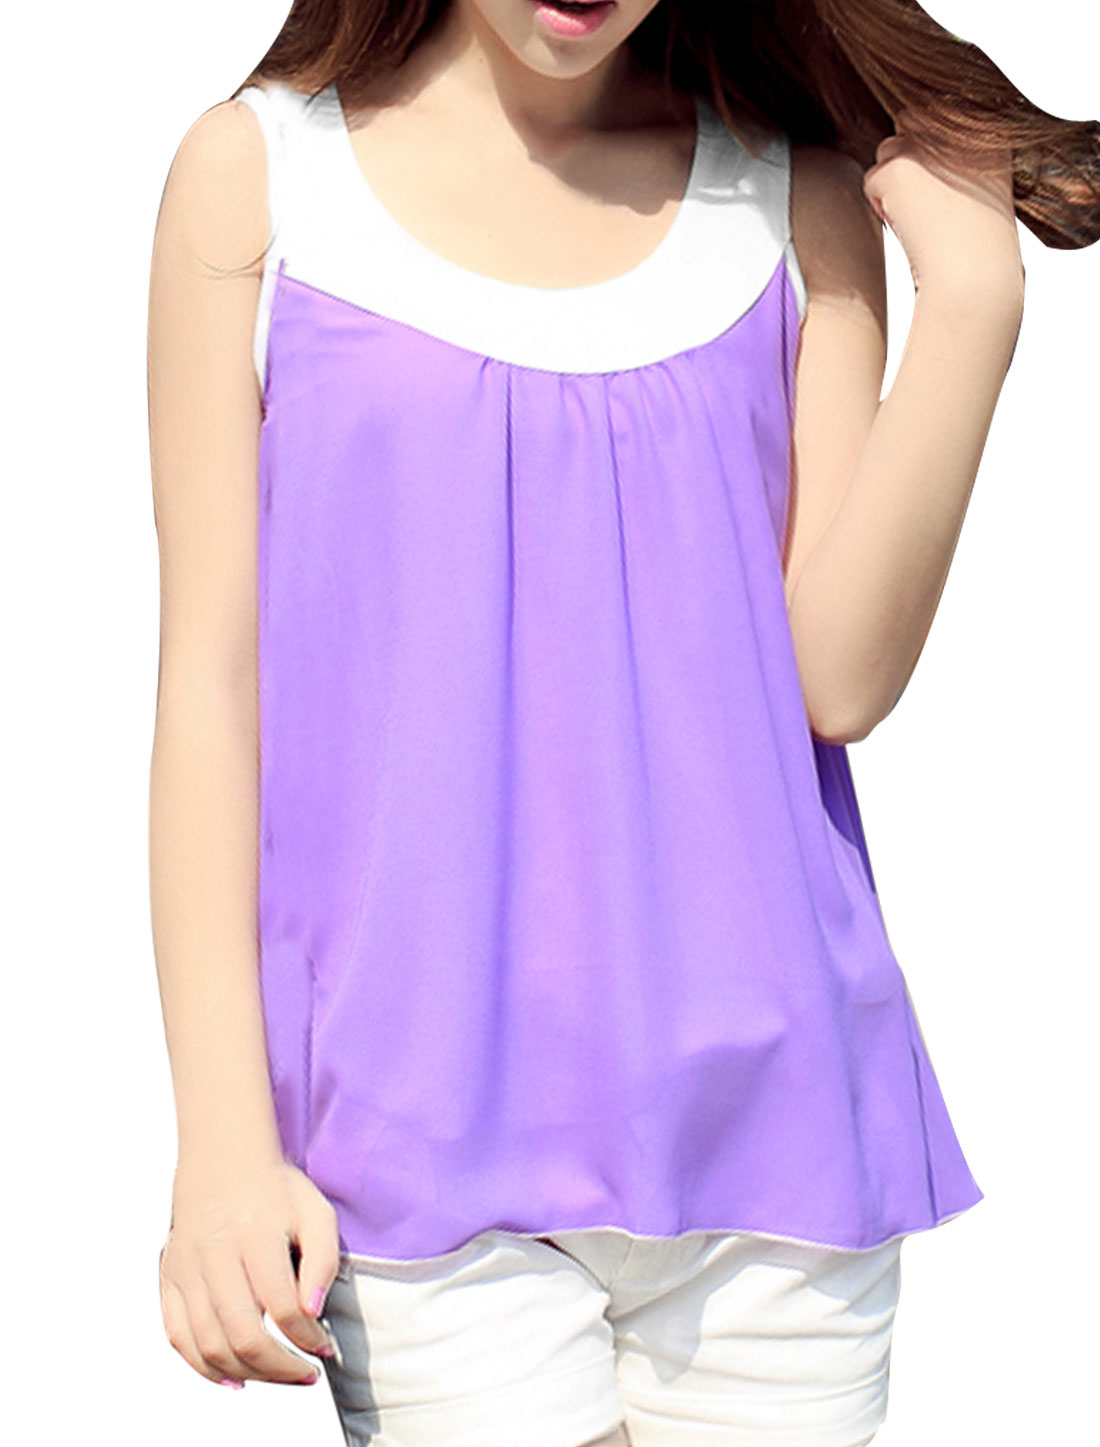 Woman NEW Lavender Color Scoop Neck Sleeveless Chiffon Tank Tops S